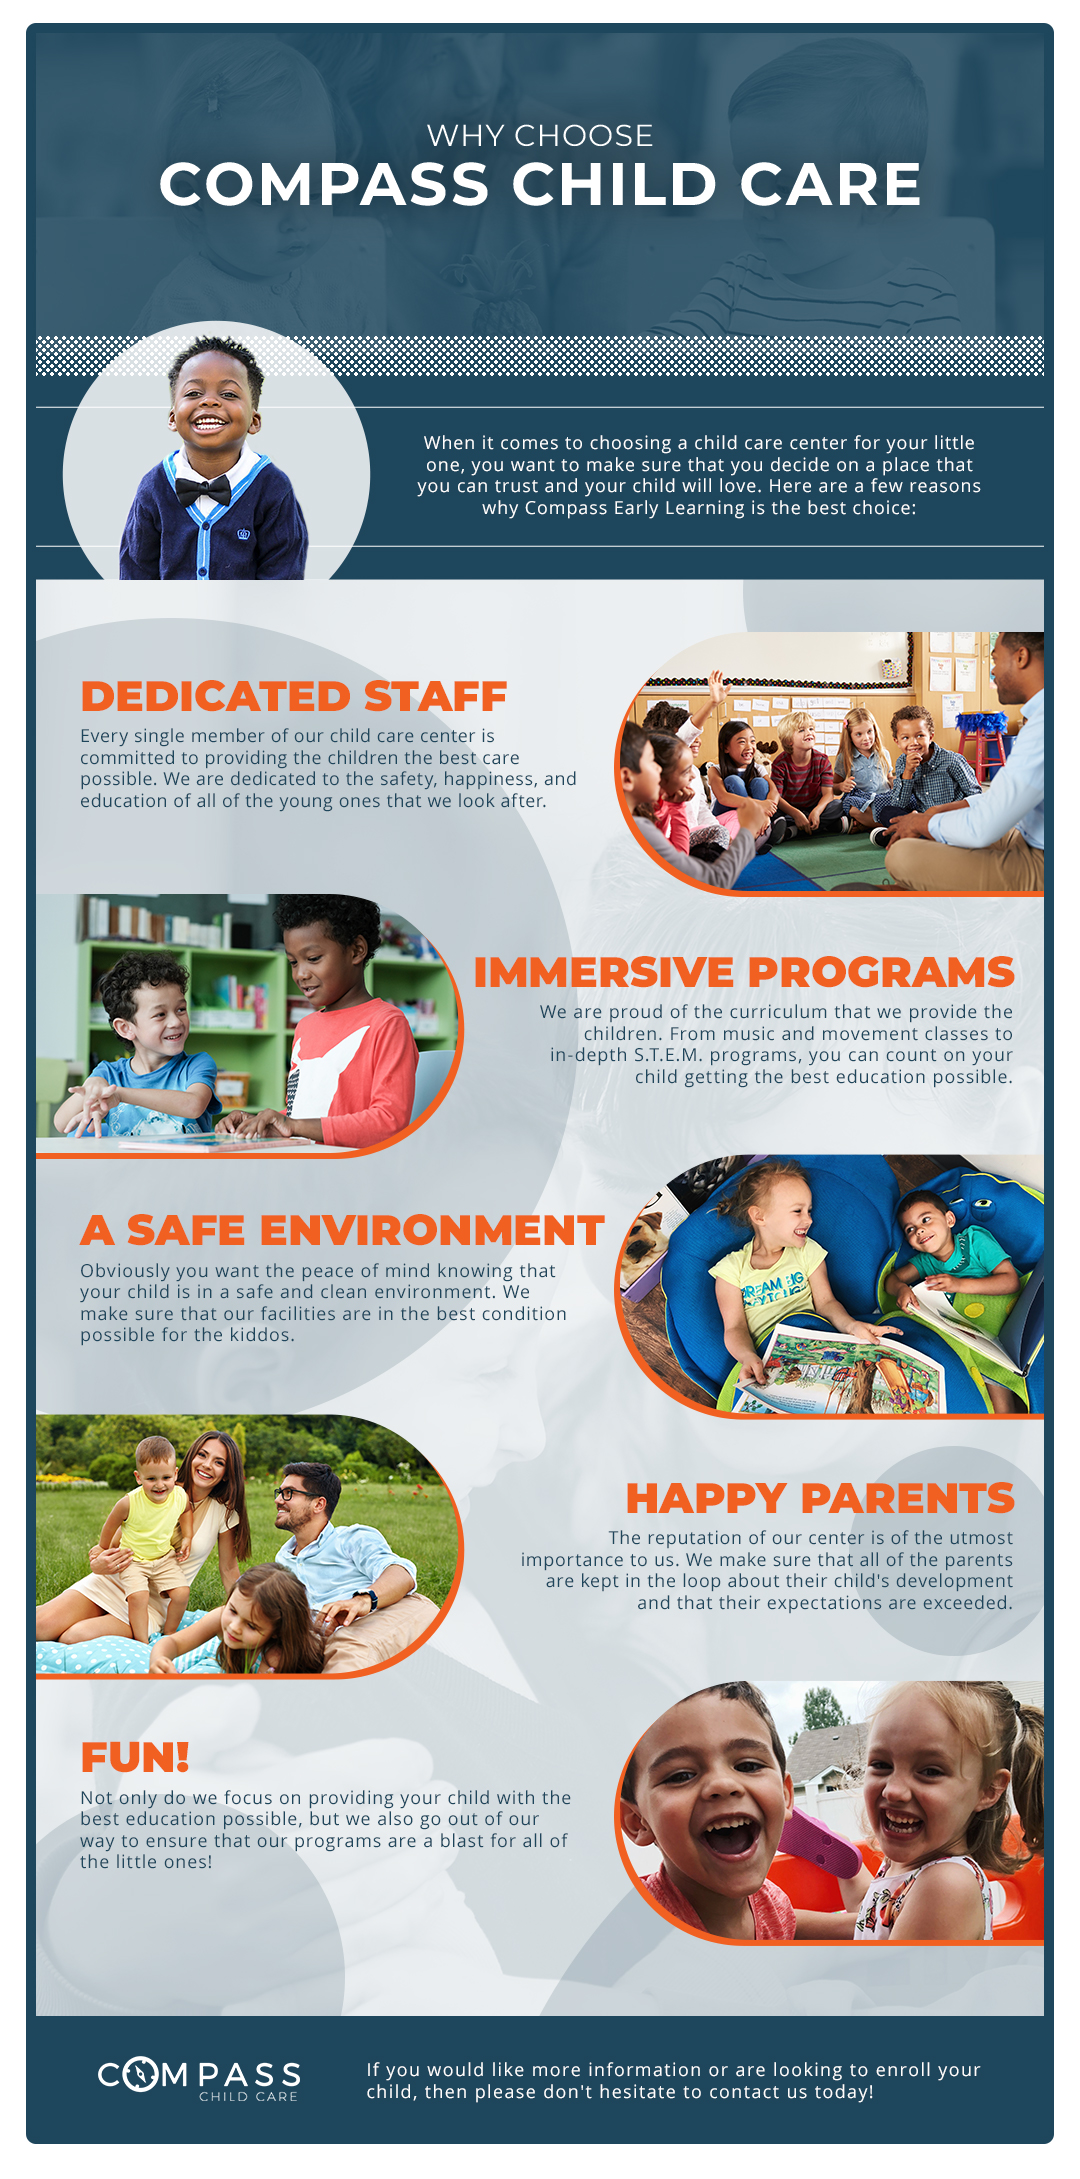 Why Choose Compass Child Care Infographic